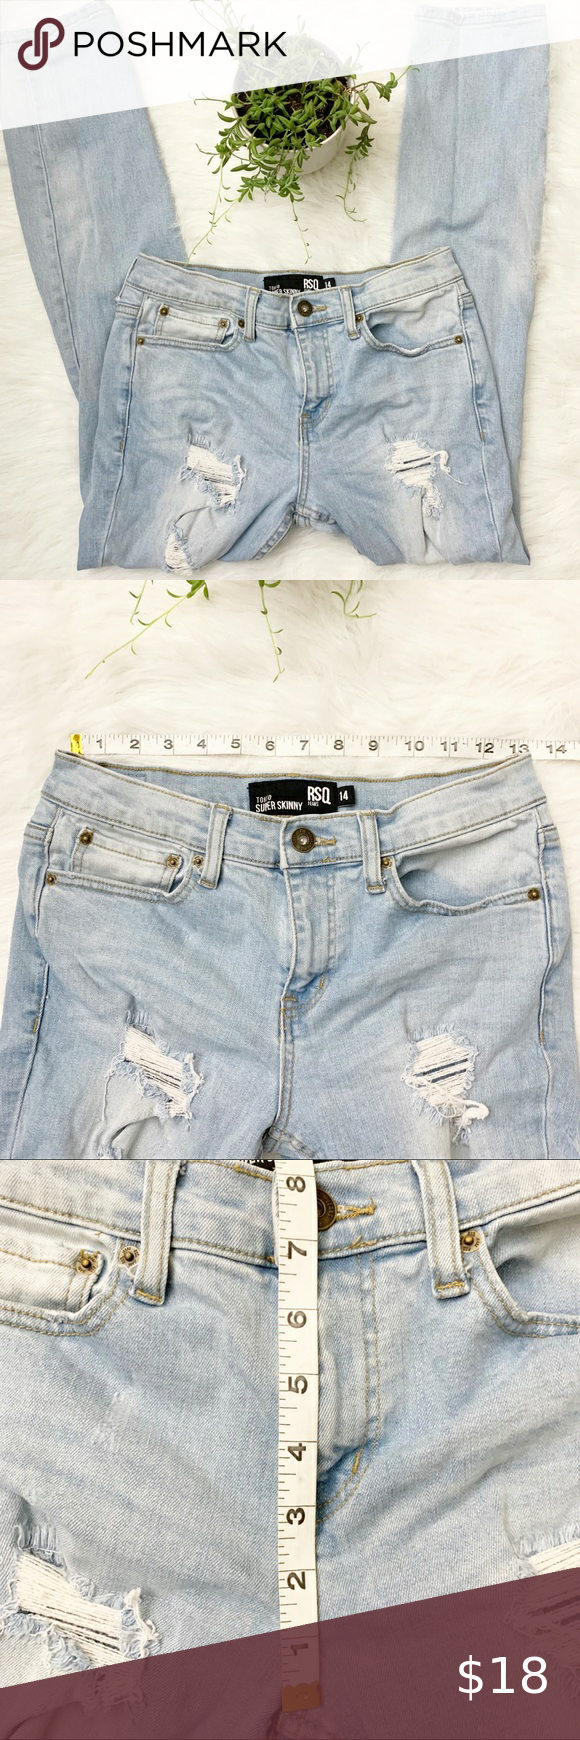 a4d879aac0e012bd51c1de1fb51e75b9 - How To Get Dirt Stains Out Of Light Jeans